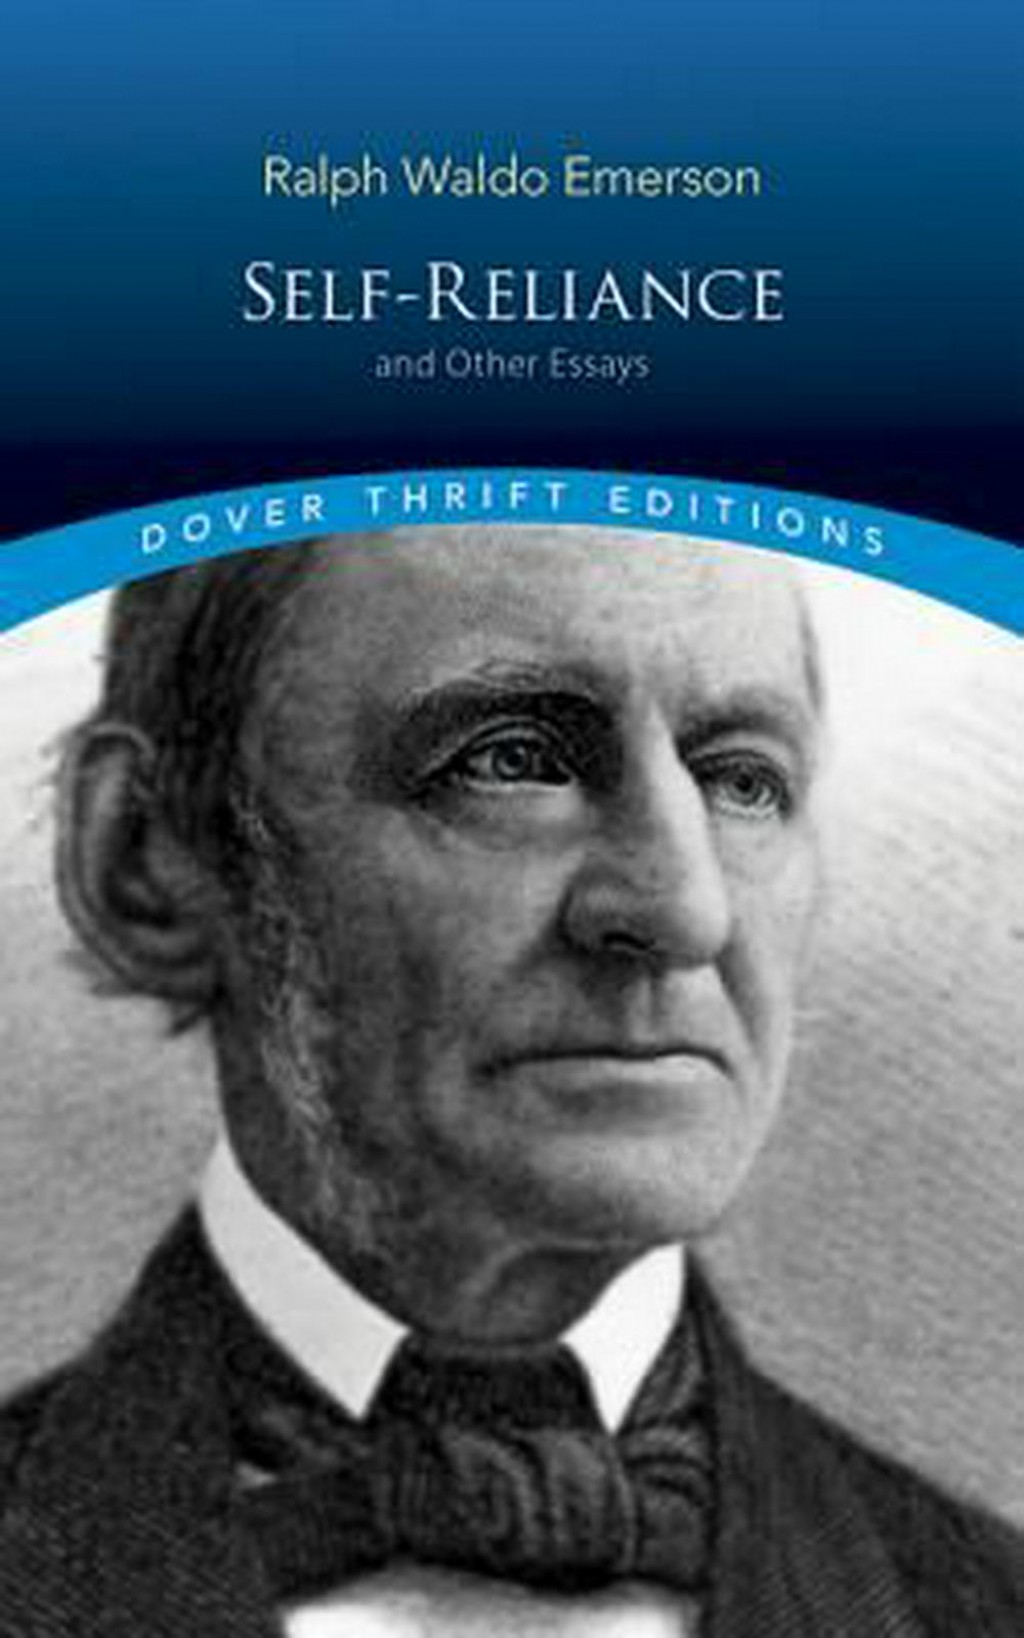 008 Essay Example 9780486277905r5c44ea15d6529 Self Reliance And Other Formidable Essays Ekşi Self-reliance (dover Thrift Editions) Pdf Epub Large